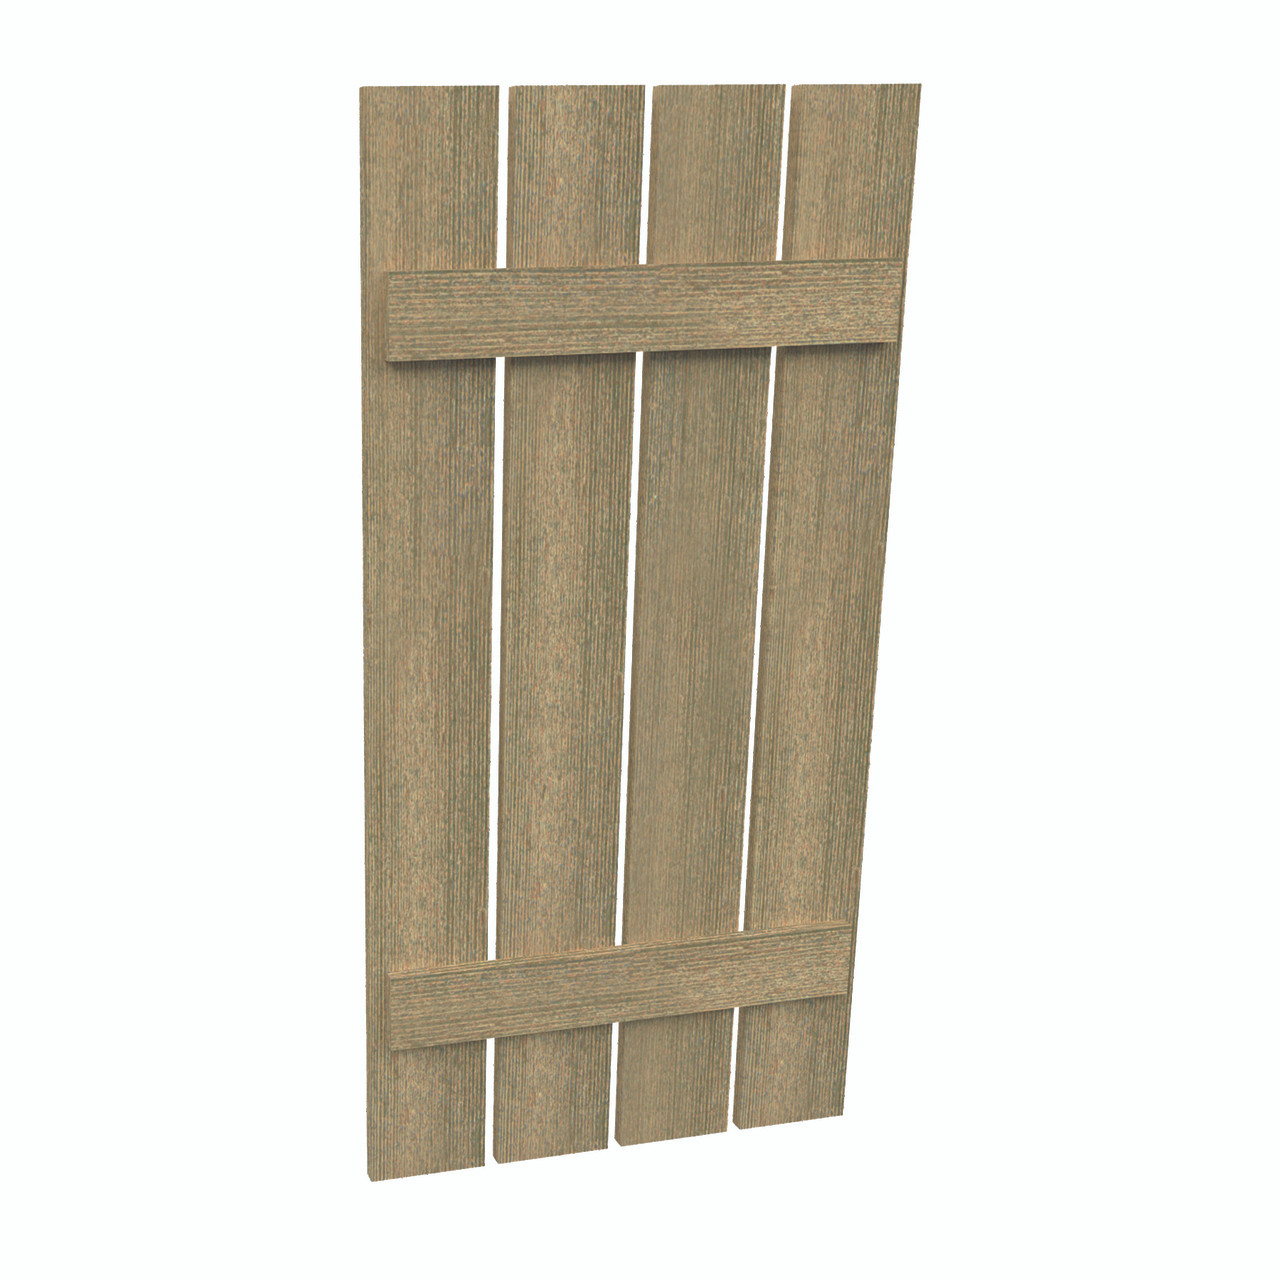 Fypon shutter___SH4PO24X96RS___SHUTTER 4 PLANK24X96X1-1/2 ROUGH SAWN WOOD GRAIN